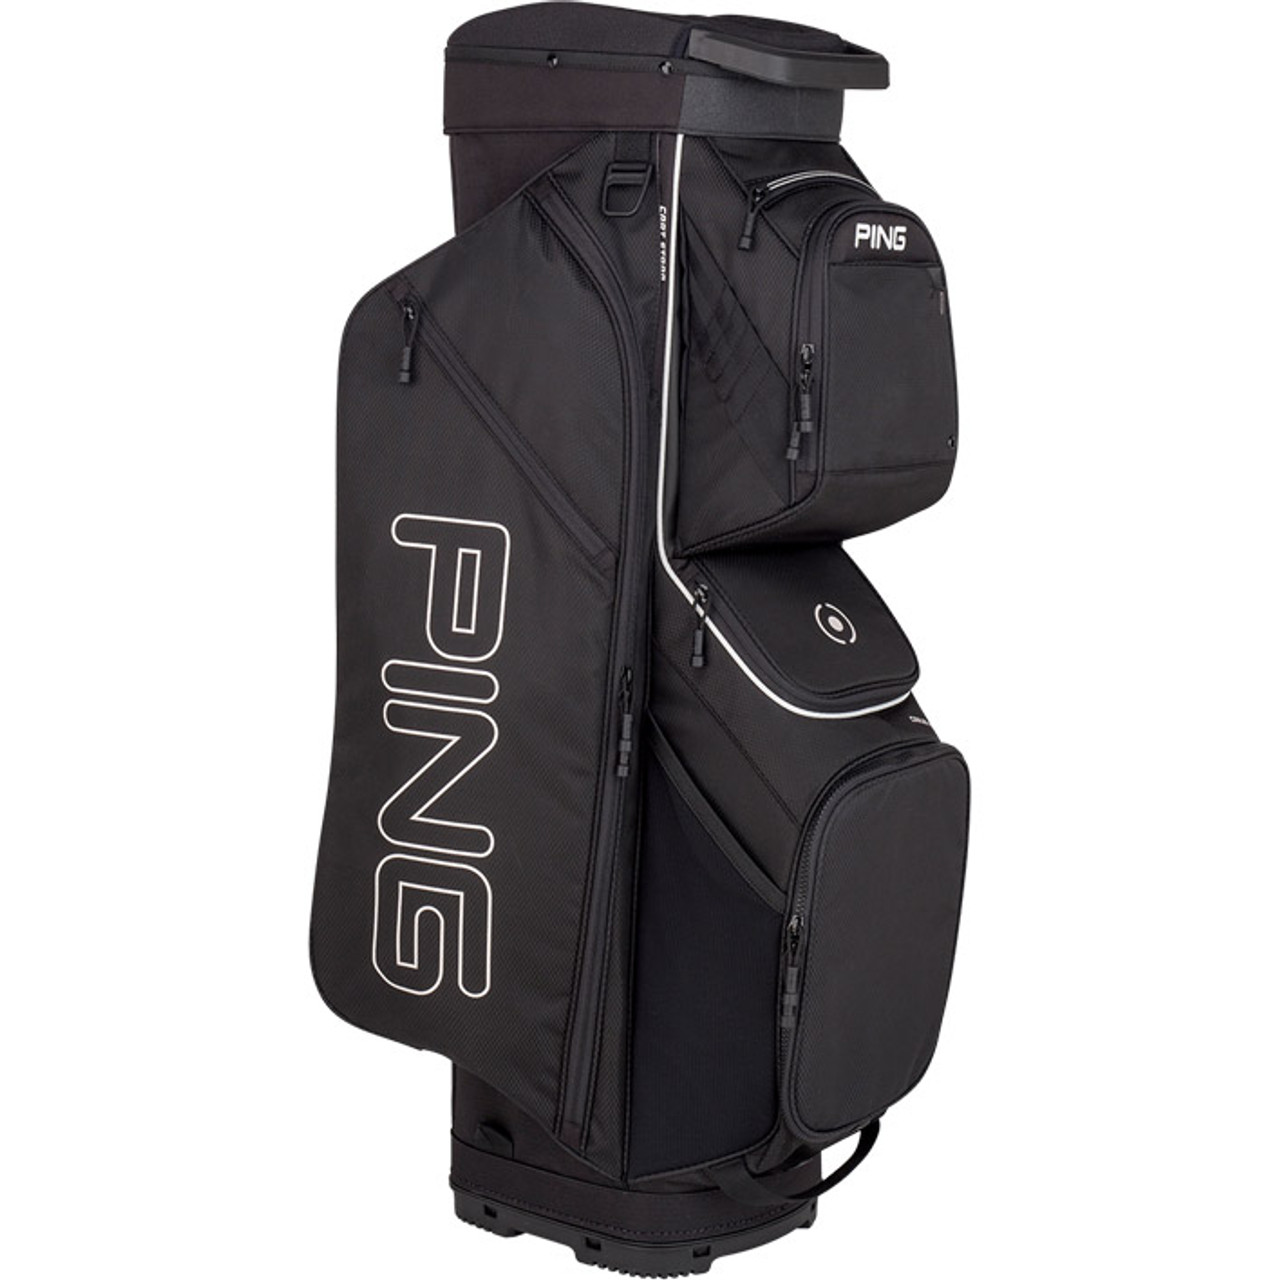 d6d02b657438 Ping Traverse Personalized Cart Bag